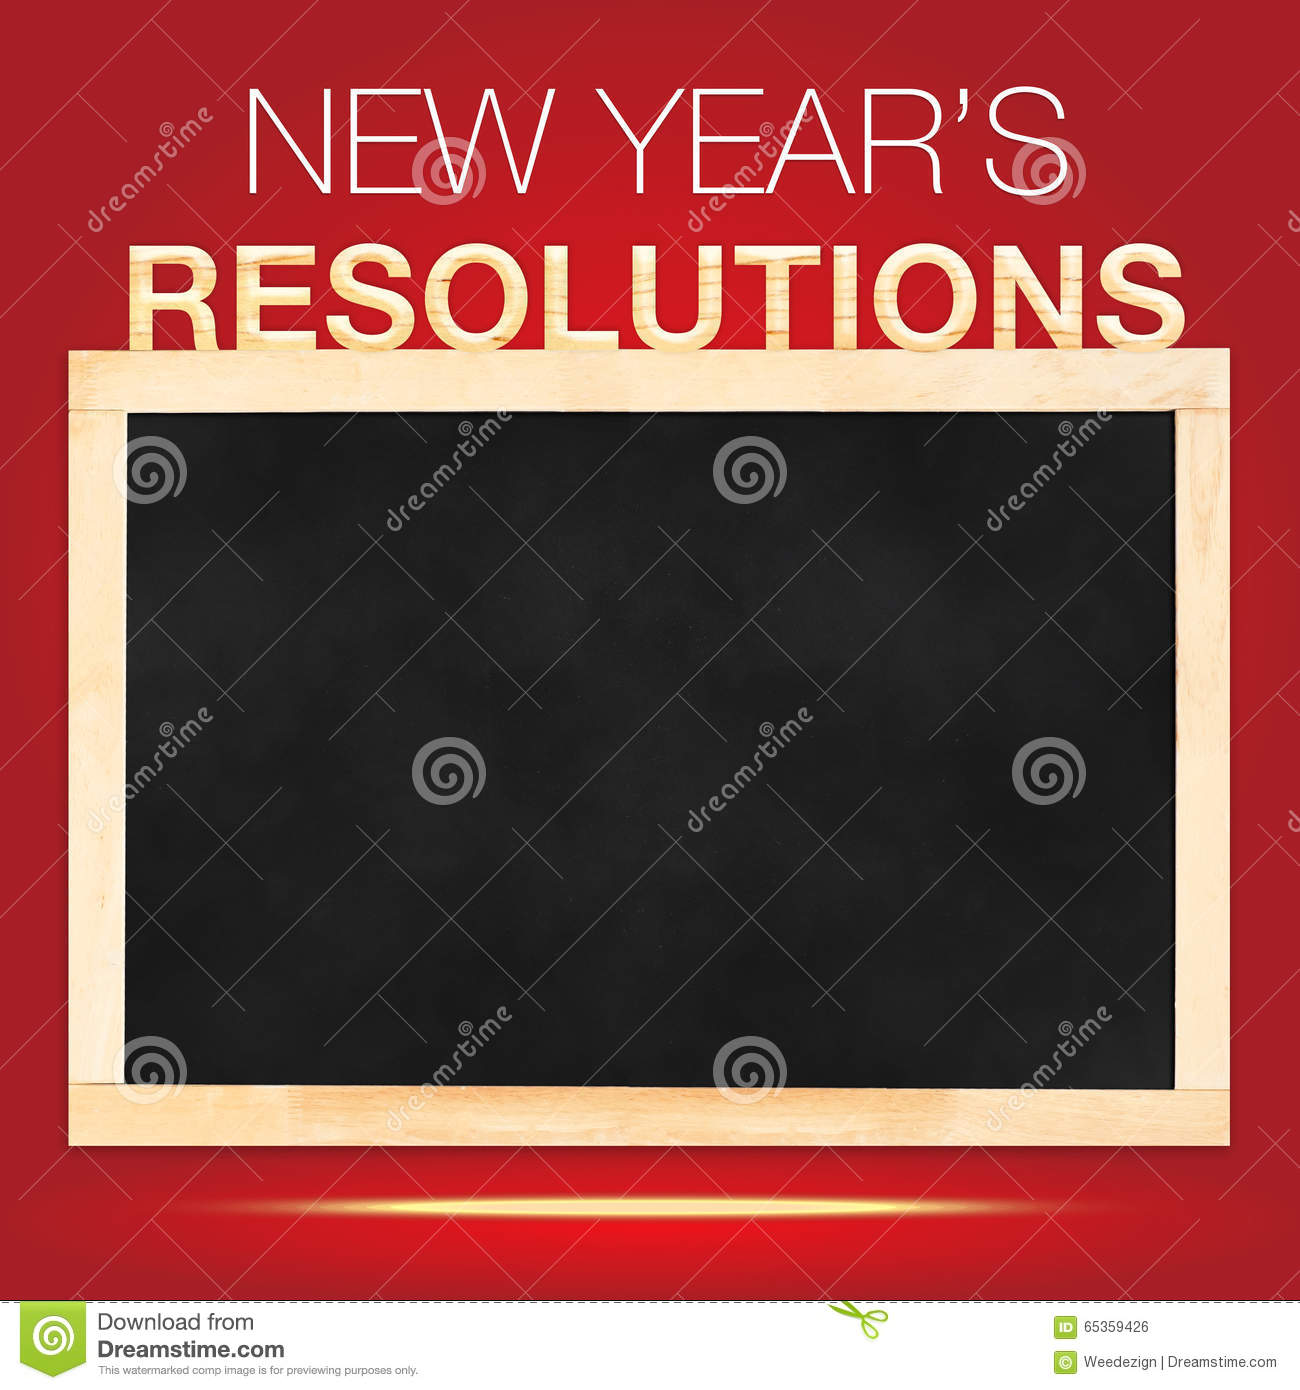 new years resolutions goals list on blackboard with red background template mock up for adding your content